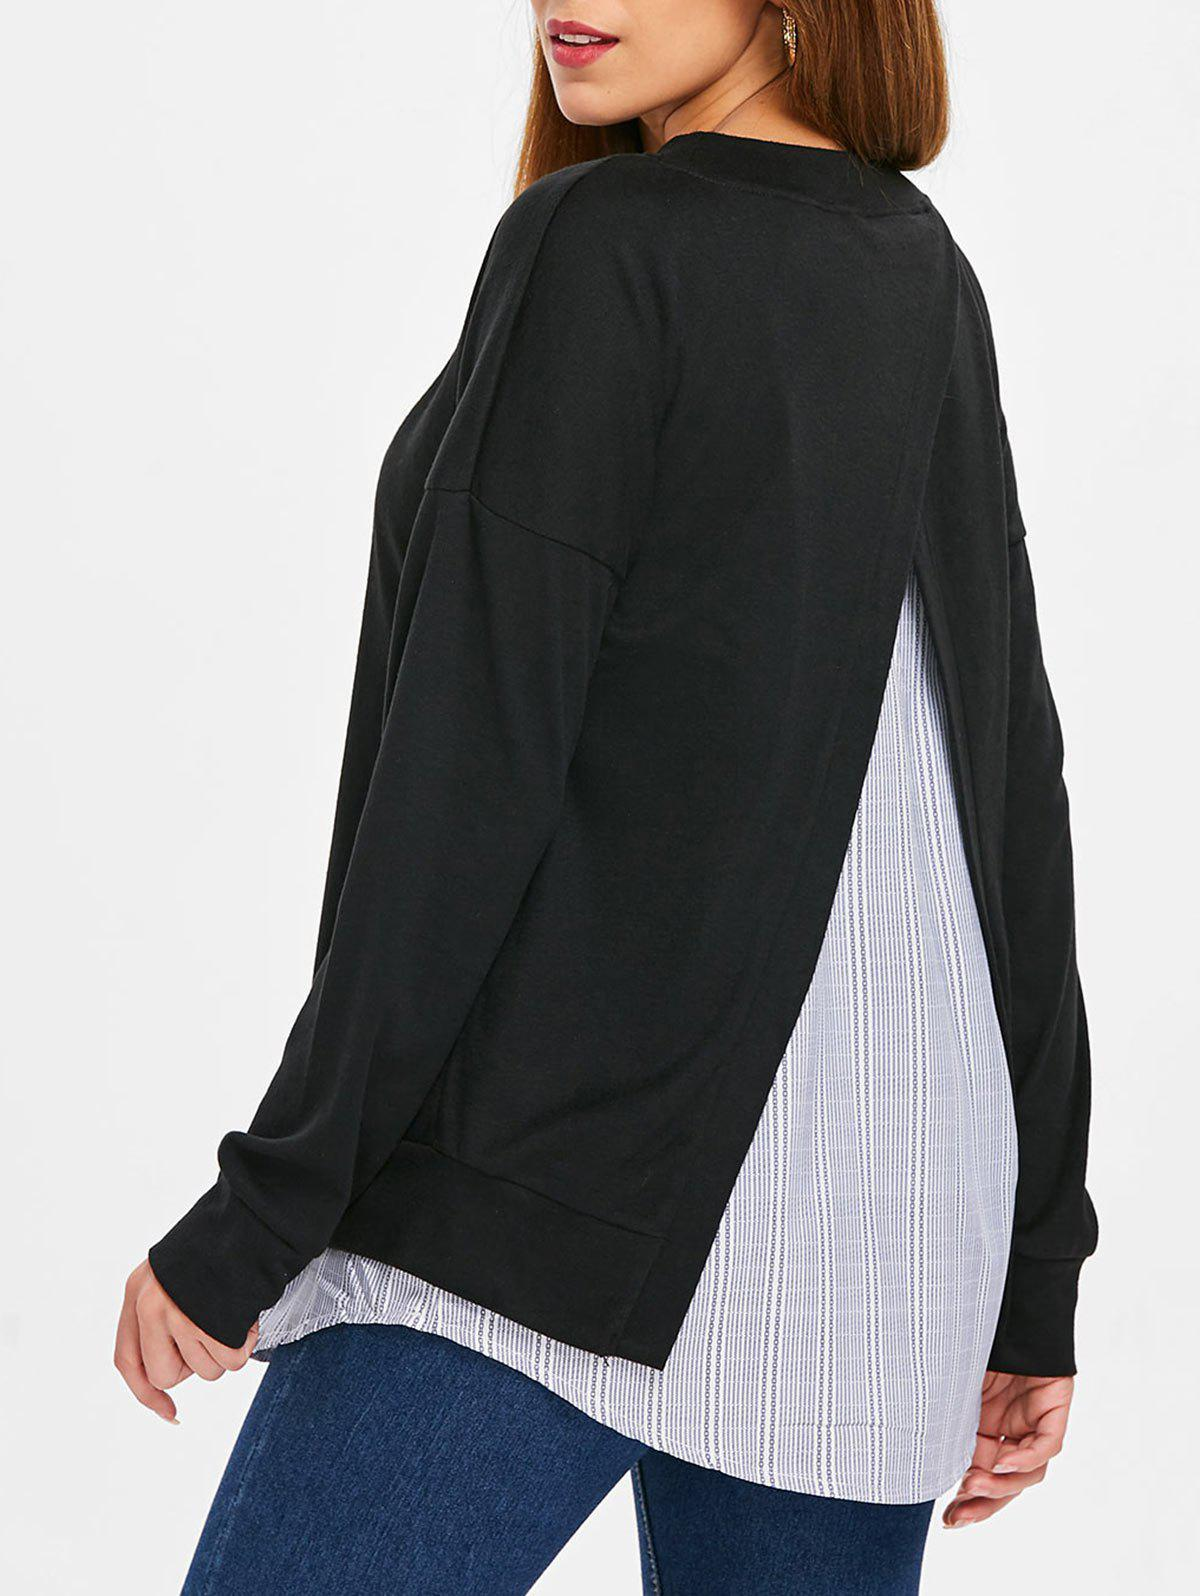 Chic Back Slit Long Sleeve Sweatshirt